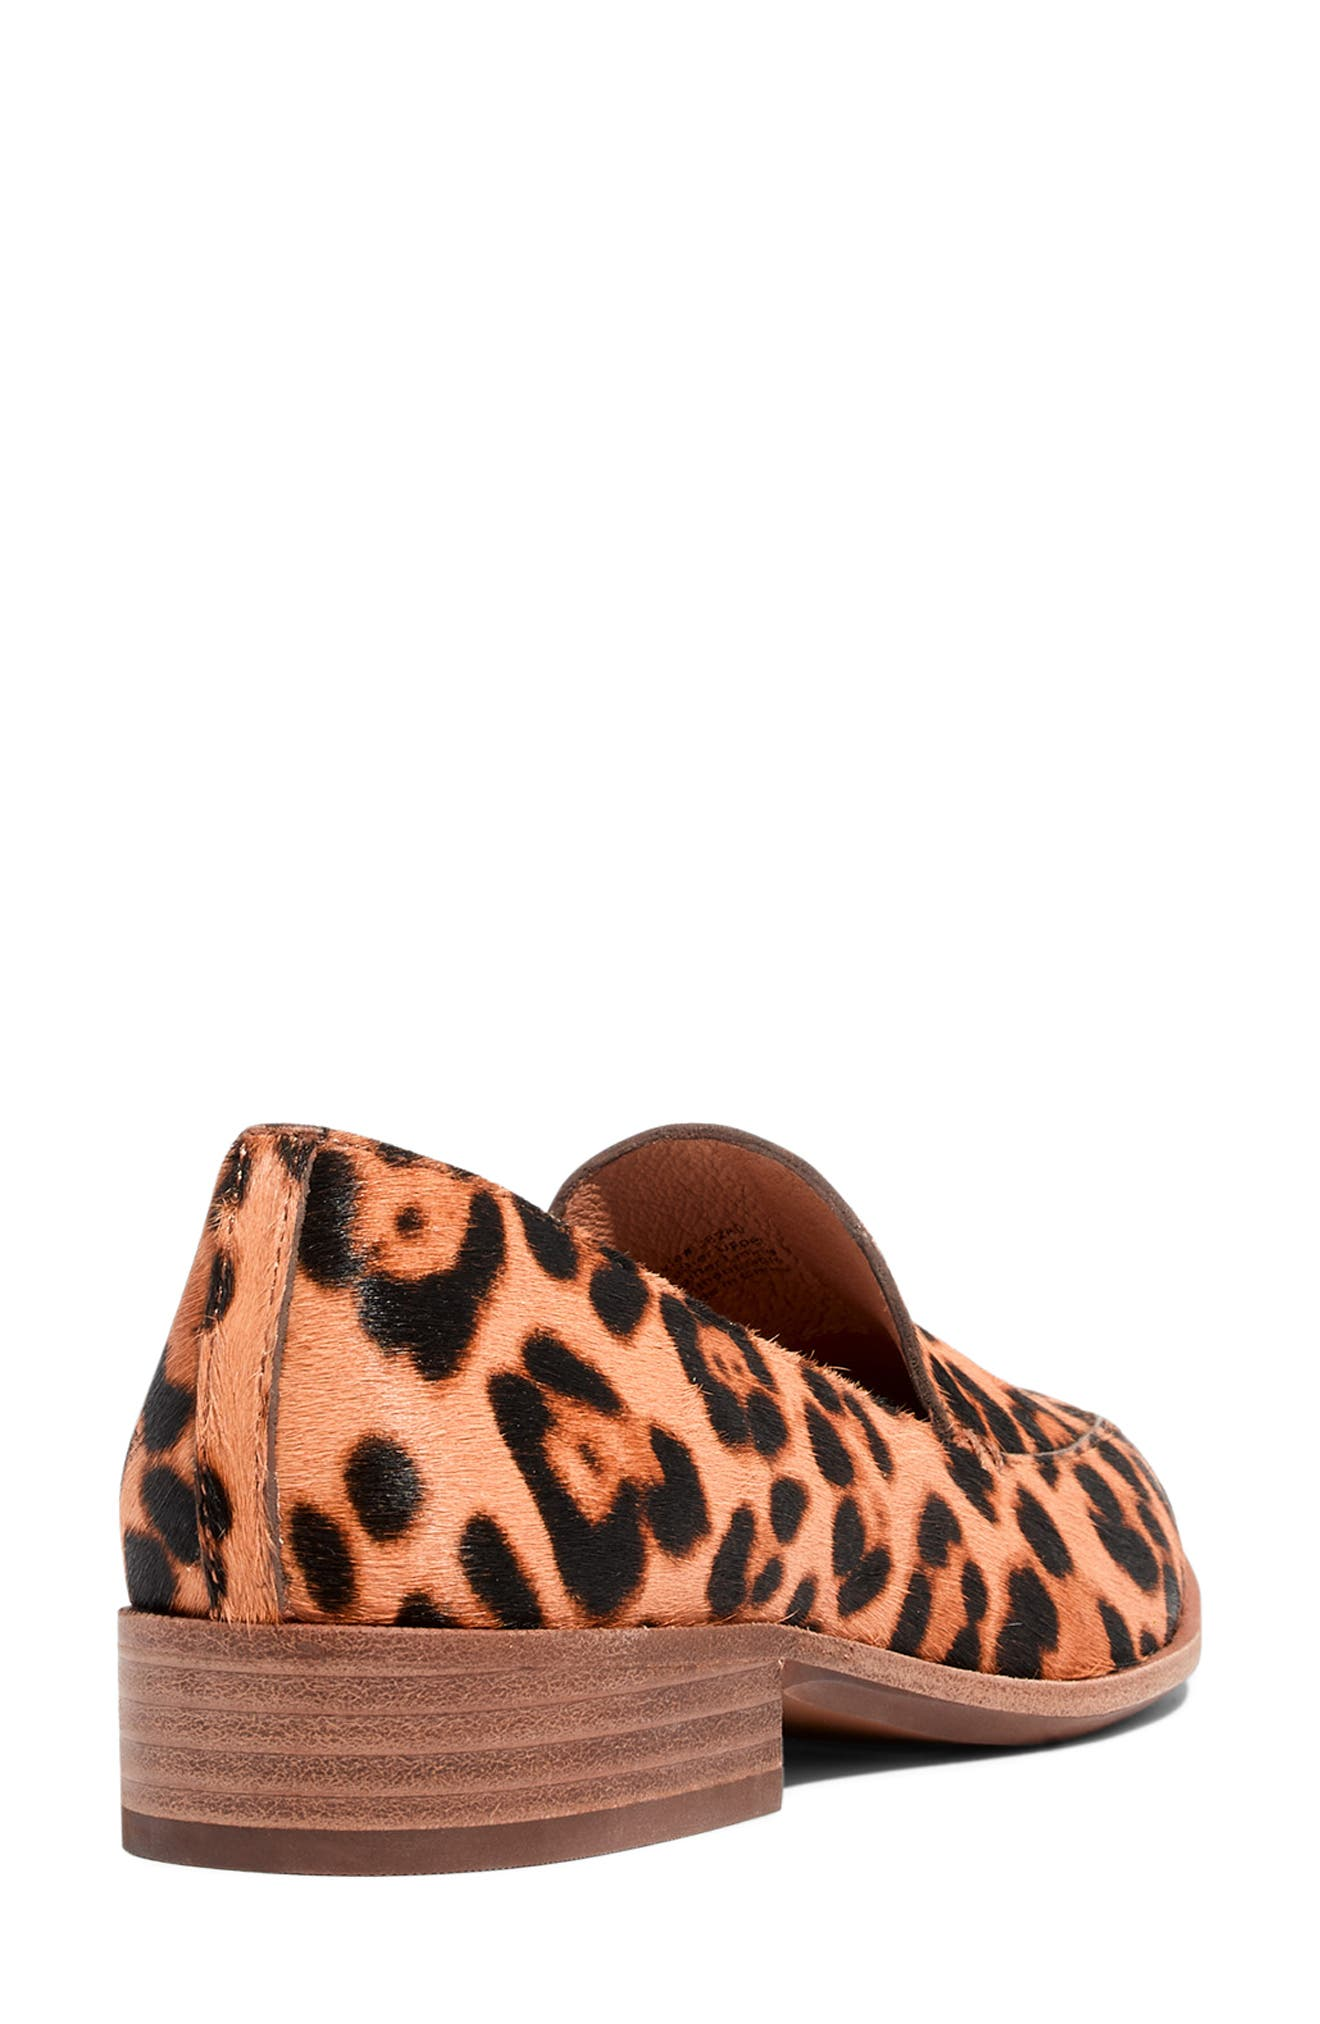 MADEWELL, The Frances Genuine Calf Hair Loafer, Alternate thumbnail 7, color, TRUFFLE MULTI LEOPARD CALFHAIR